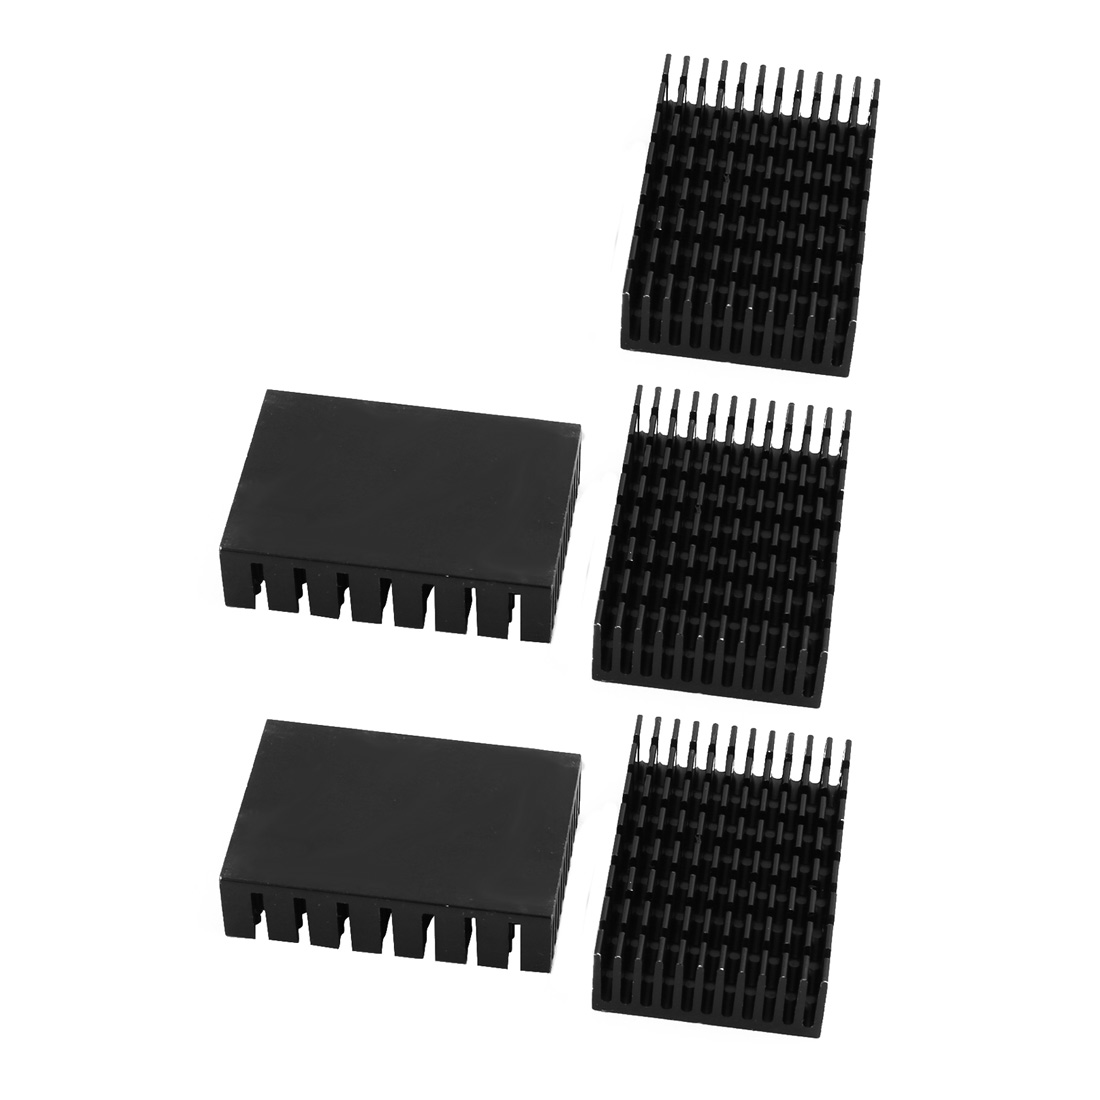 5pcs 45mmx31mmx12mm Black Aluminum Heatsink Heat Diffuse Cooling Fin